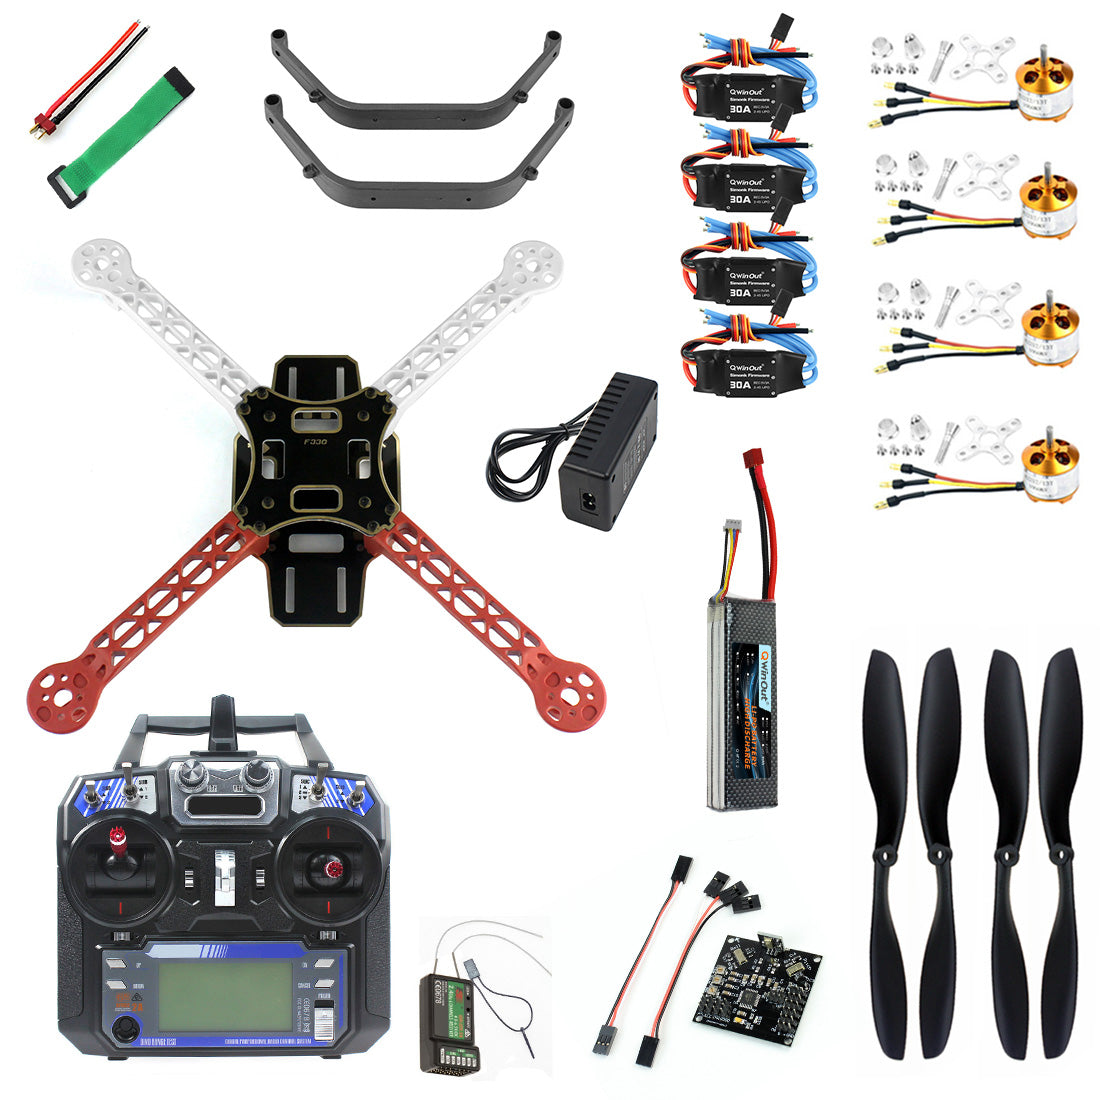 QWinOut Full Set DIY RC Drone Quadrocopter 4-axis Aircraft Kit F330 MultiCopter Frame KK XCOPTER Flight Control Transmitter